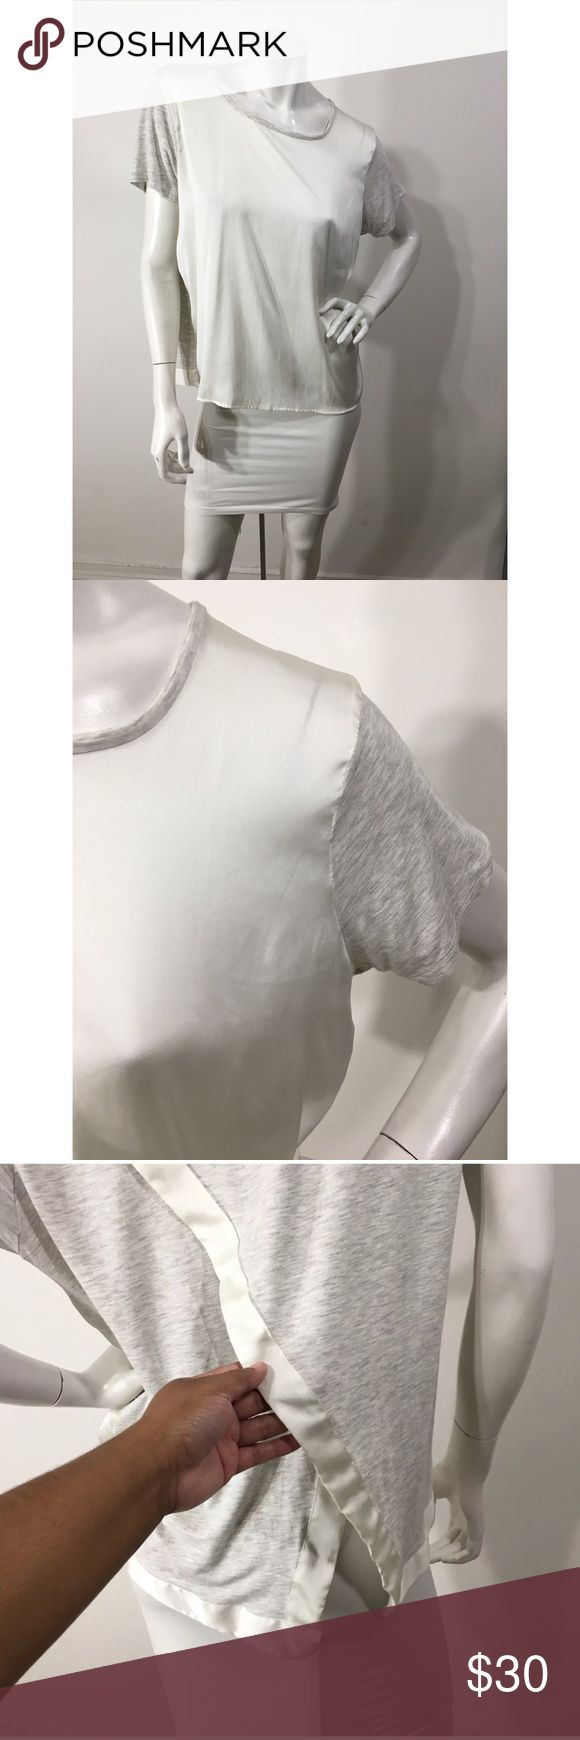 """Anthropologie Dolan Left Coast Top Wrap Back Check out my other listings! Bundle and save! Gently worn. No flaws. Comes from smoke- free/ pet free environment. Size: Large Length: 26"""" Underarm to Underarm: 24"""" Material: Shell- Rayon/Spandex Contrast- Polyester Anthropologie Tops"""